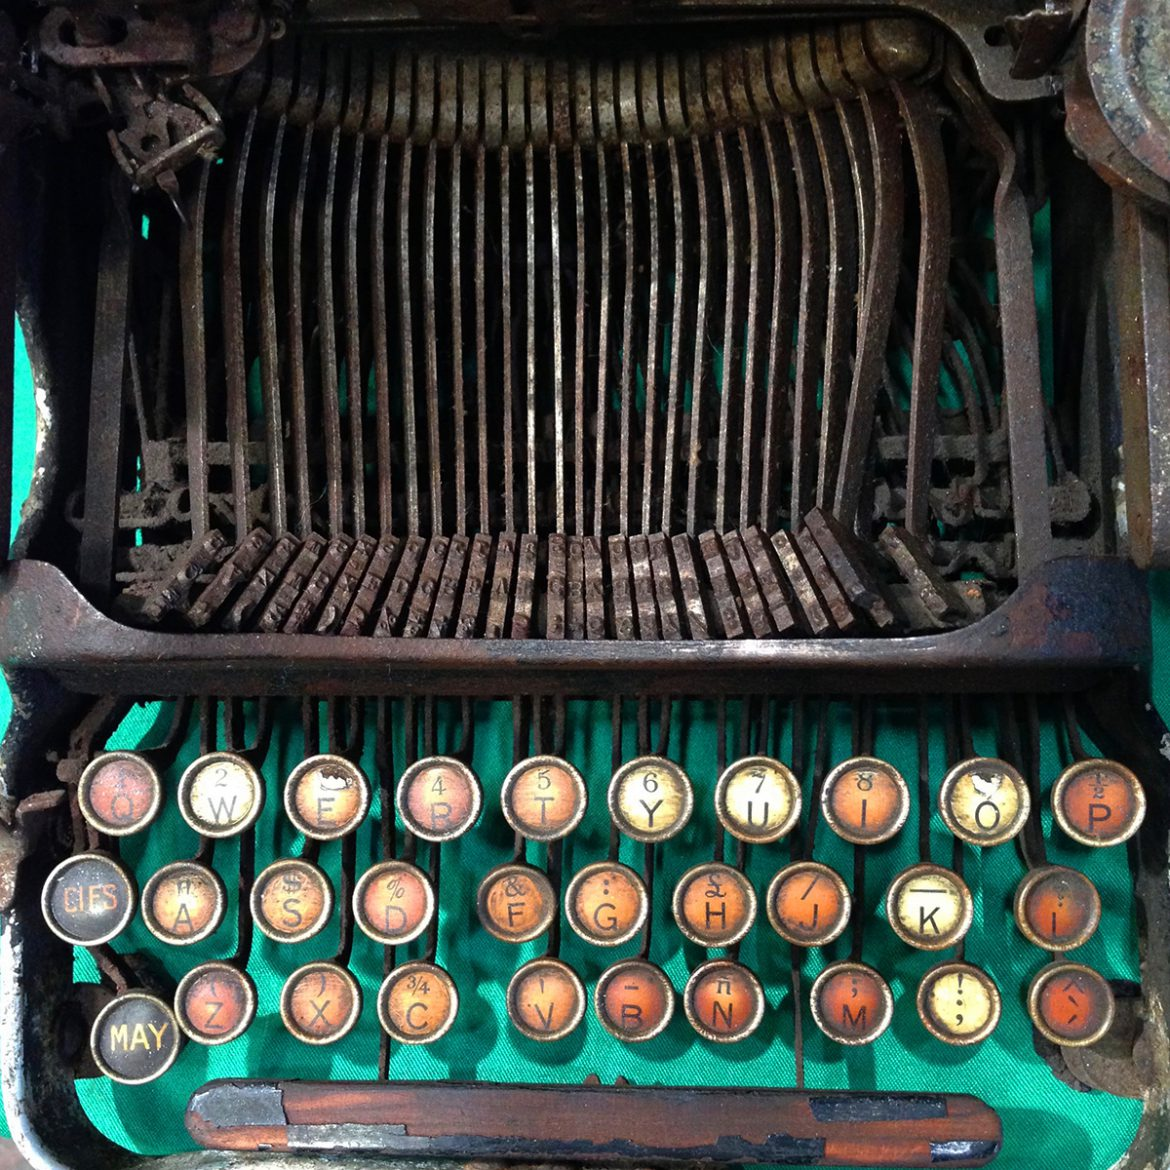 Antique typewriter - Words of the day